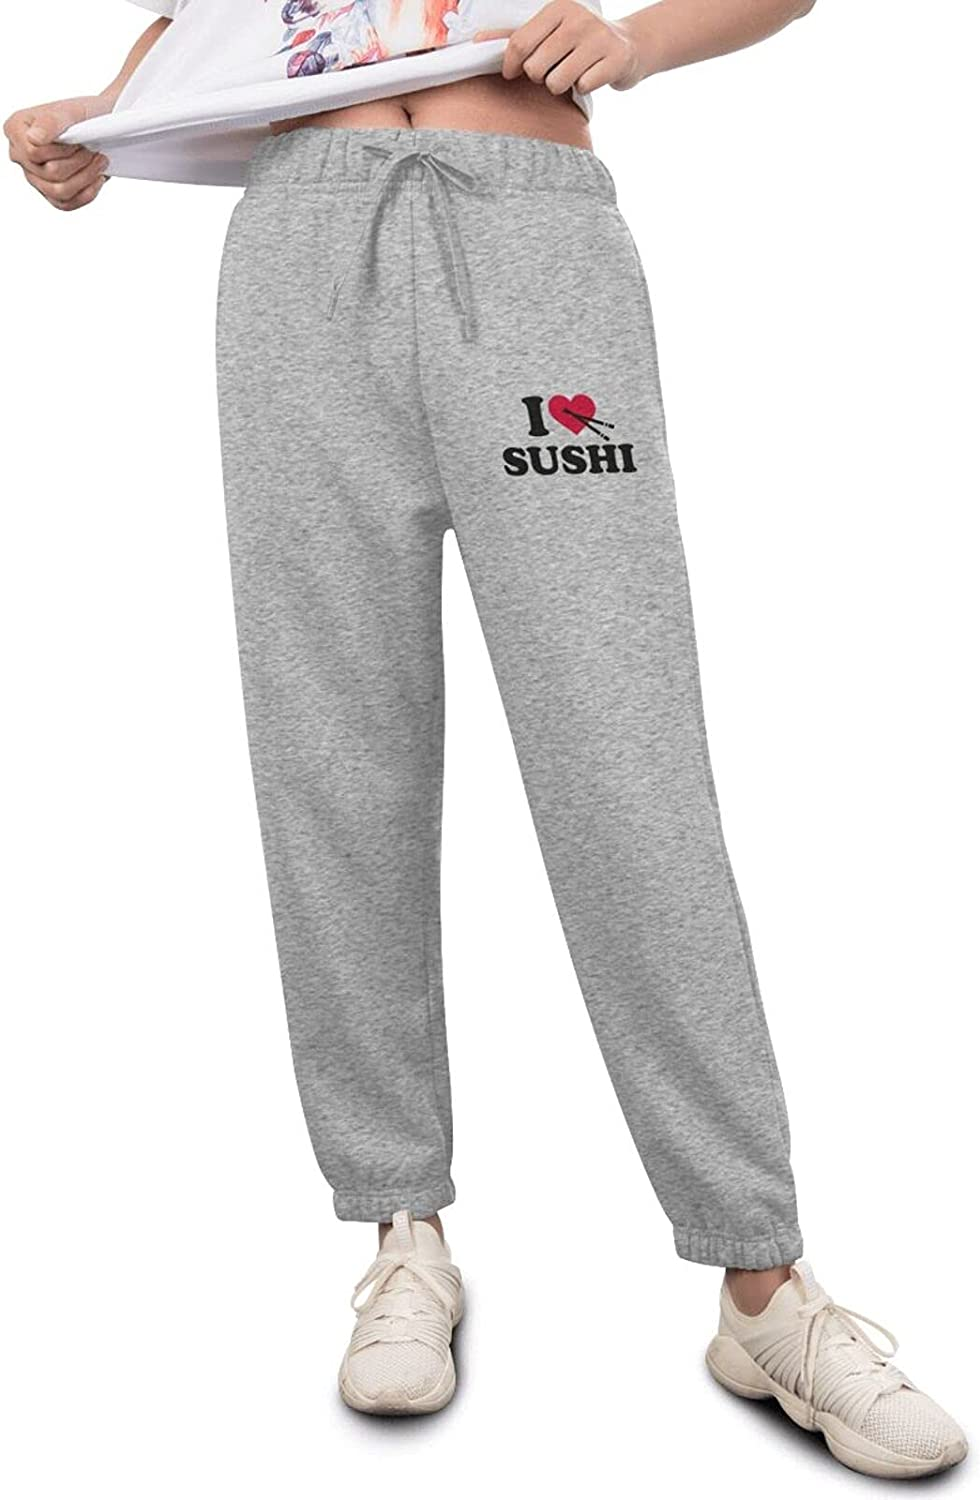 Recommendation I Love Sushi Women's Special price Relaxed-Fit Trousers Breathable Lightweight